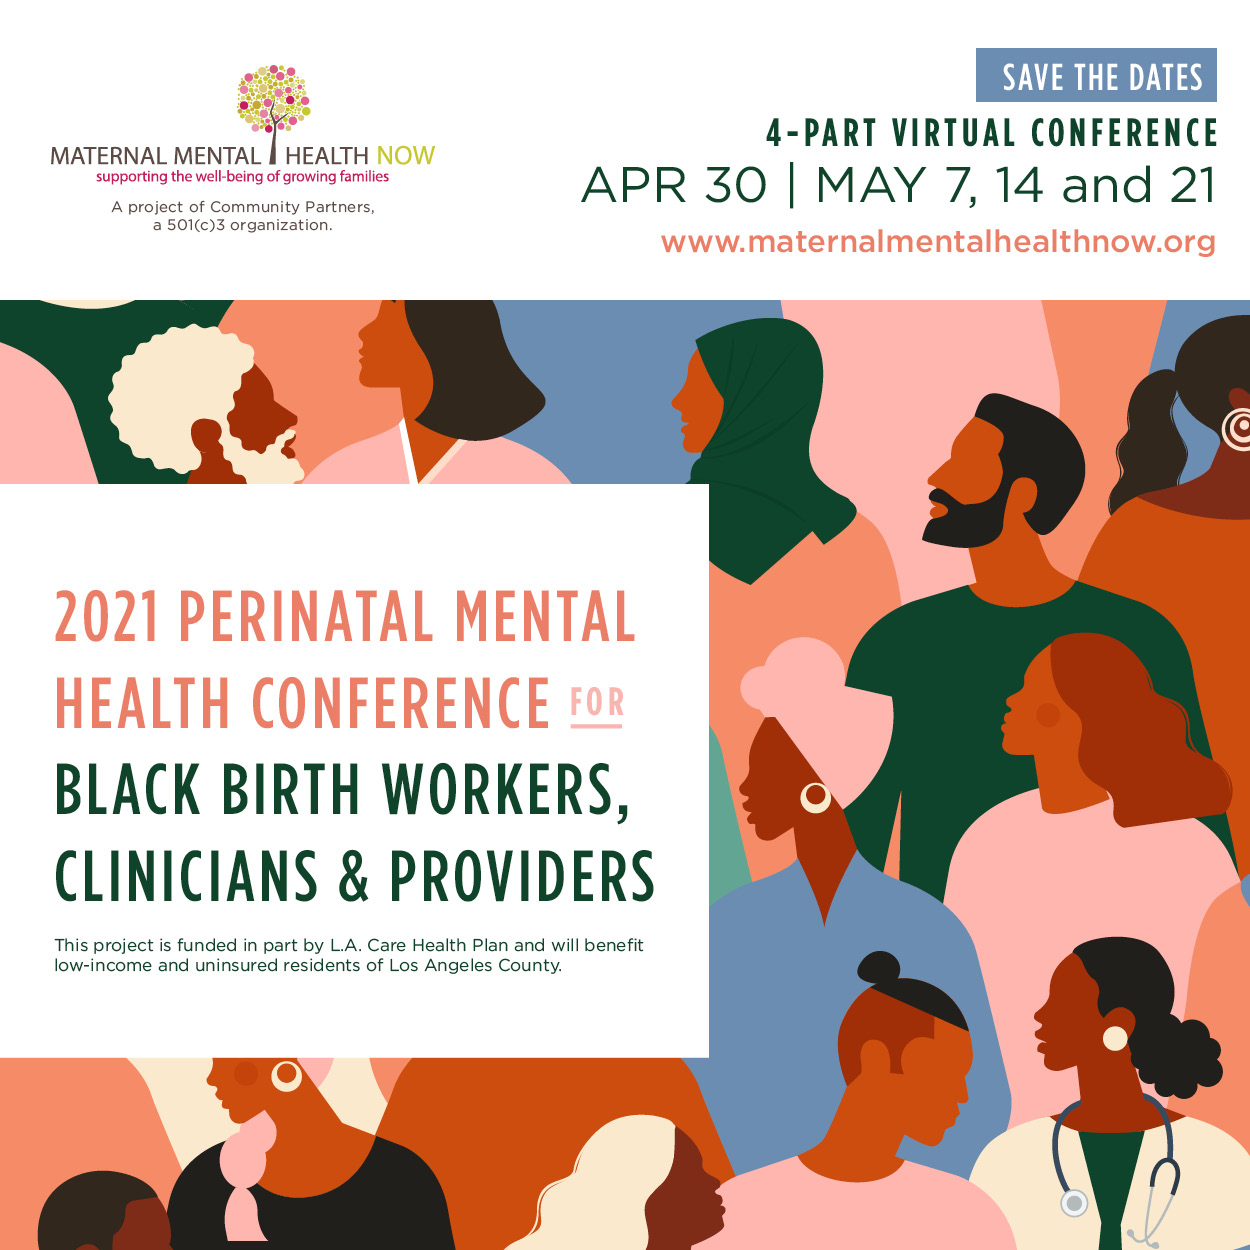 2021 Perinatal Mental Health Conference